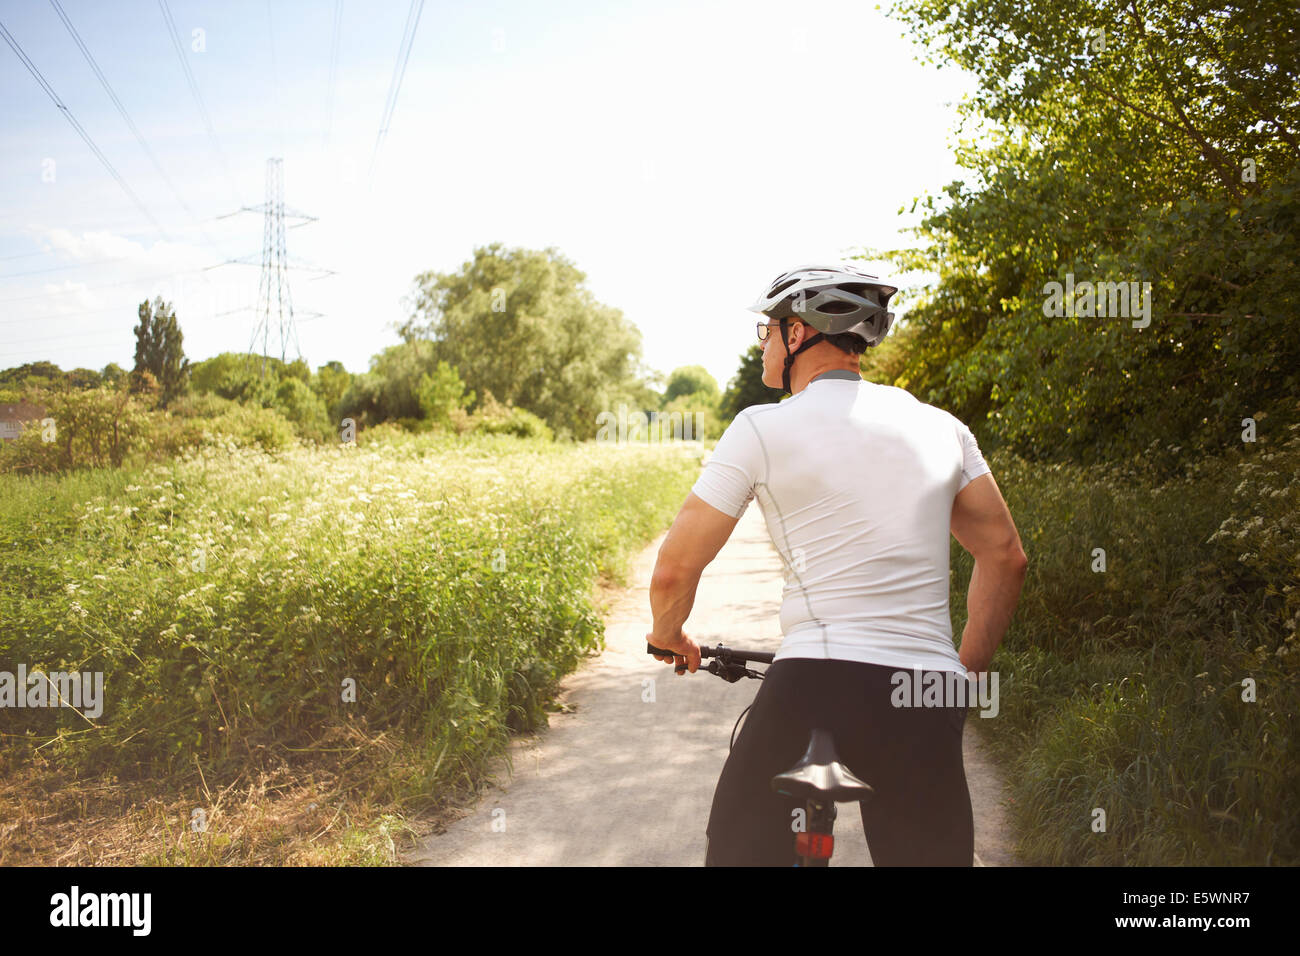 Cyclist stopping for break - Stock Image